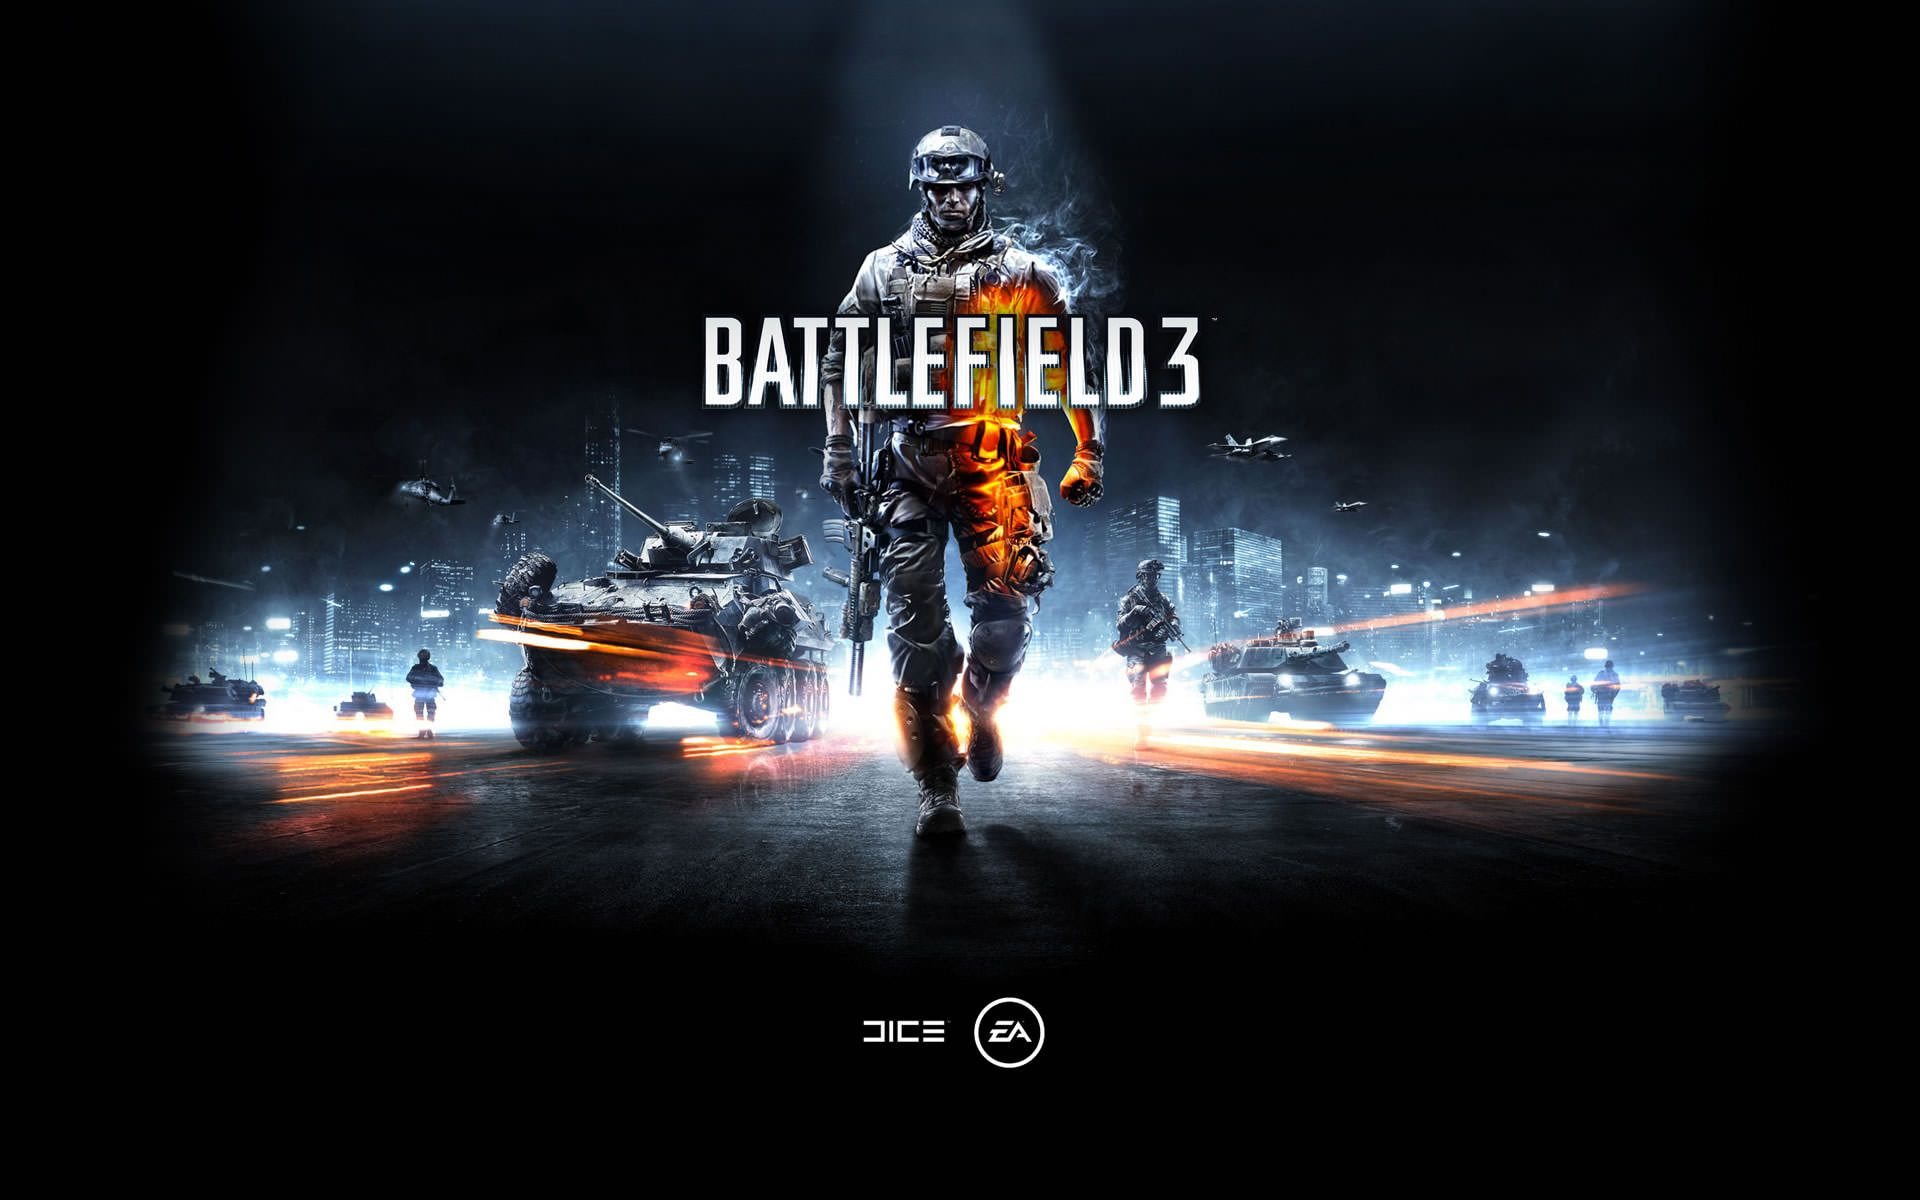 Battlefield 3 Pc Game Free Download Single Link Direct Dengan Gambar